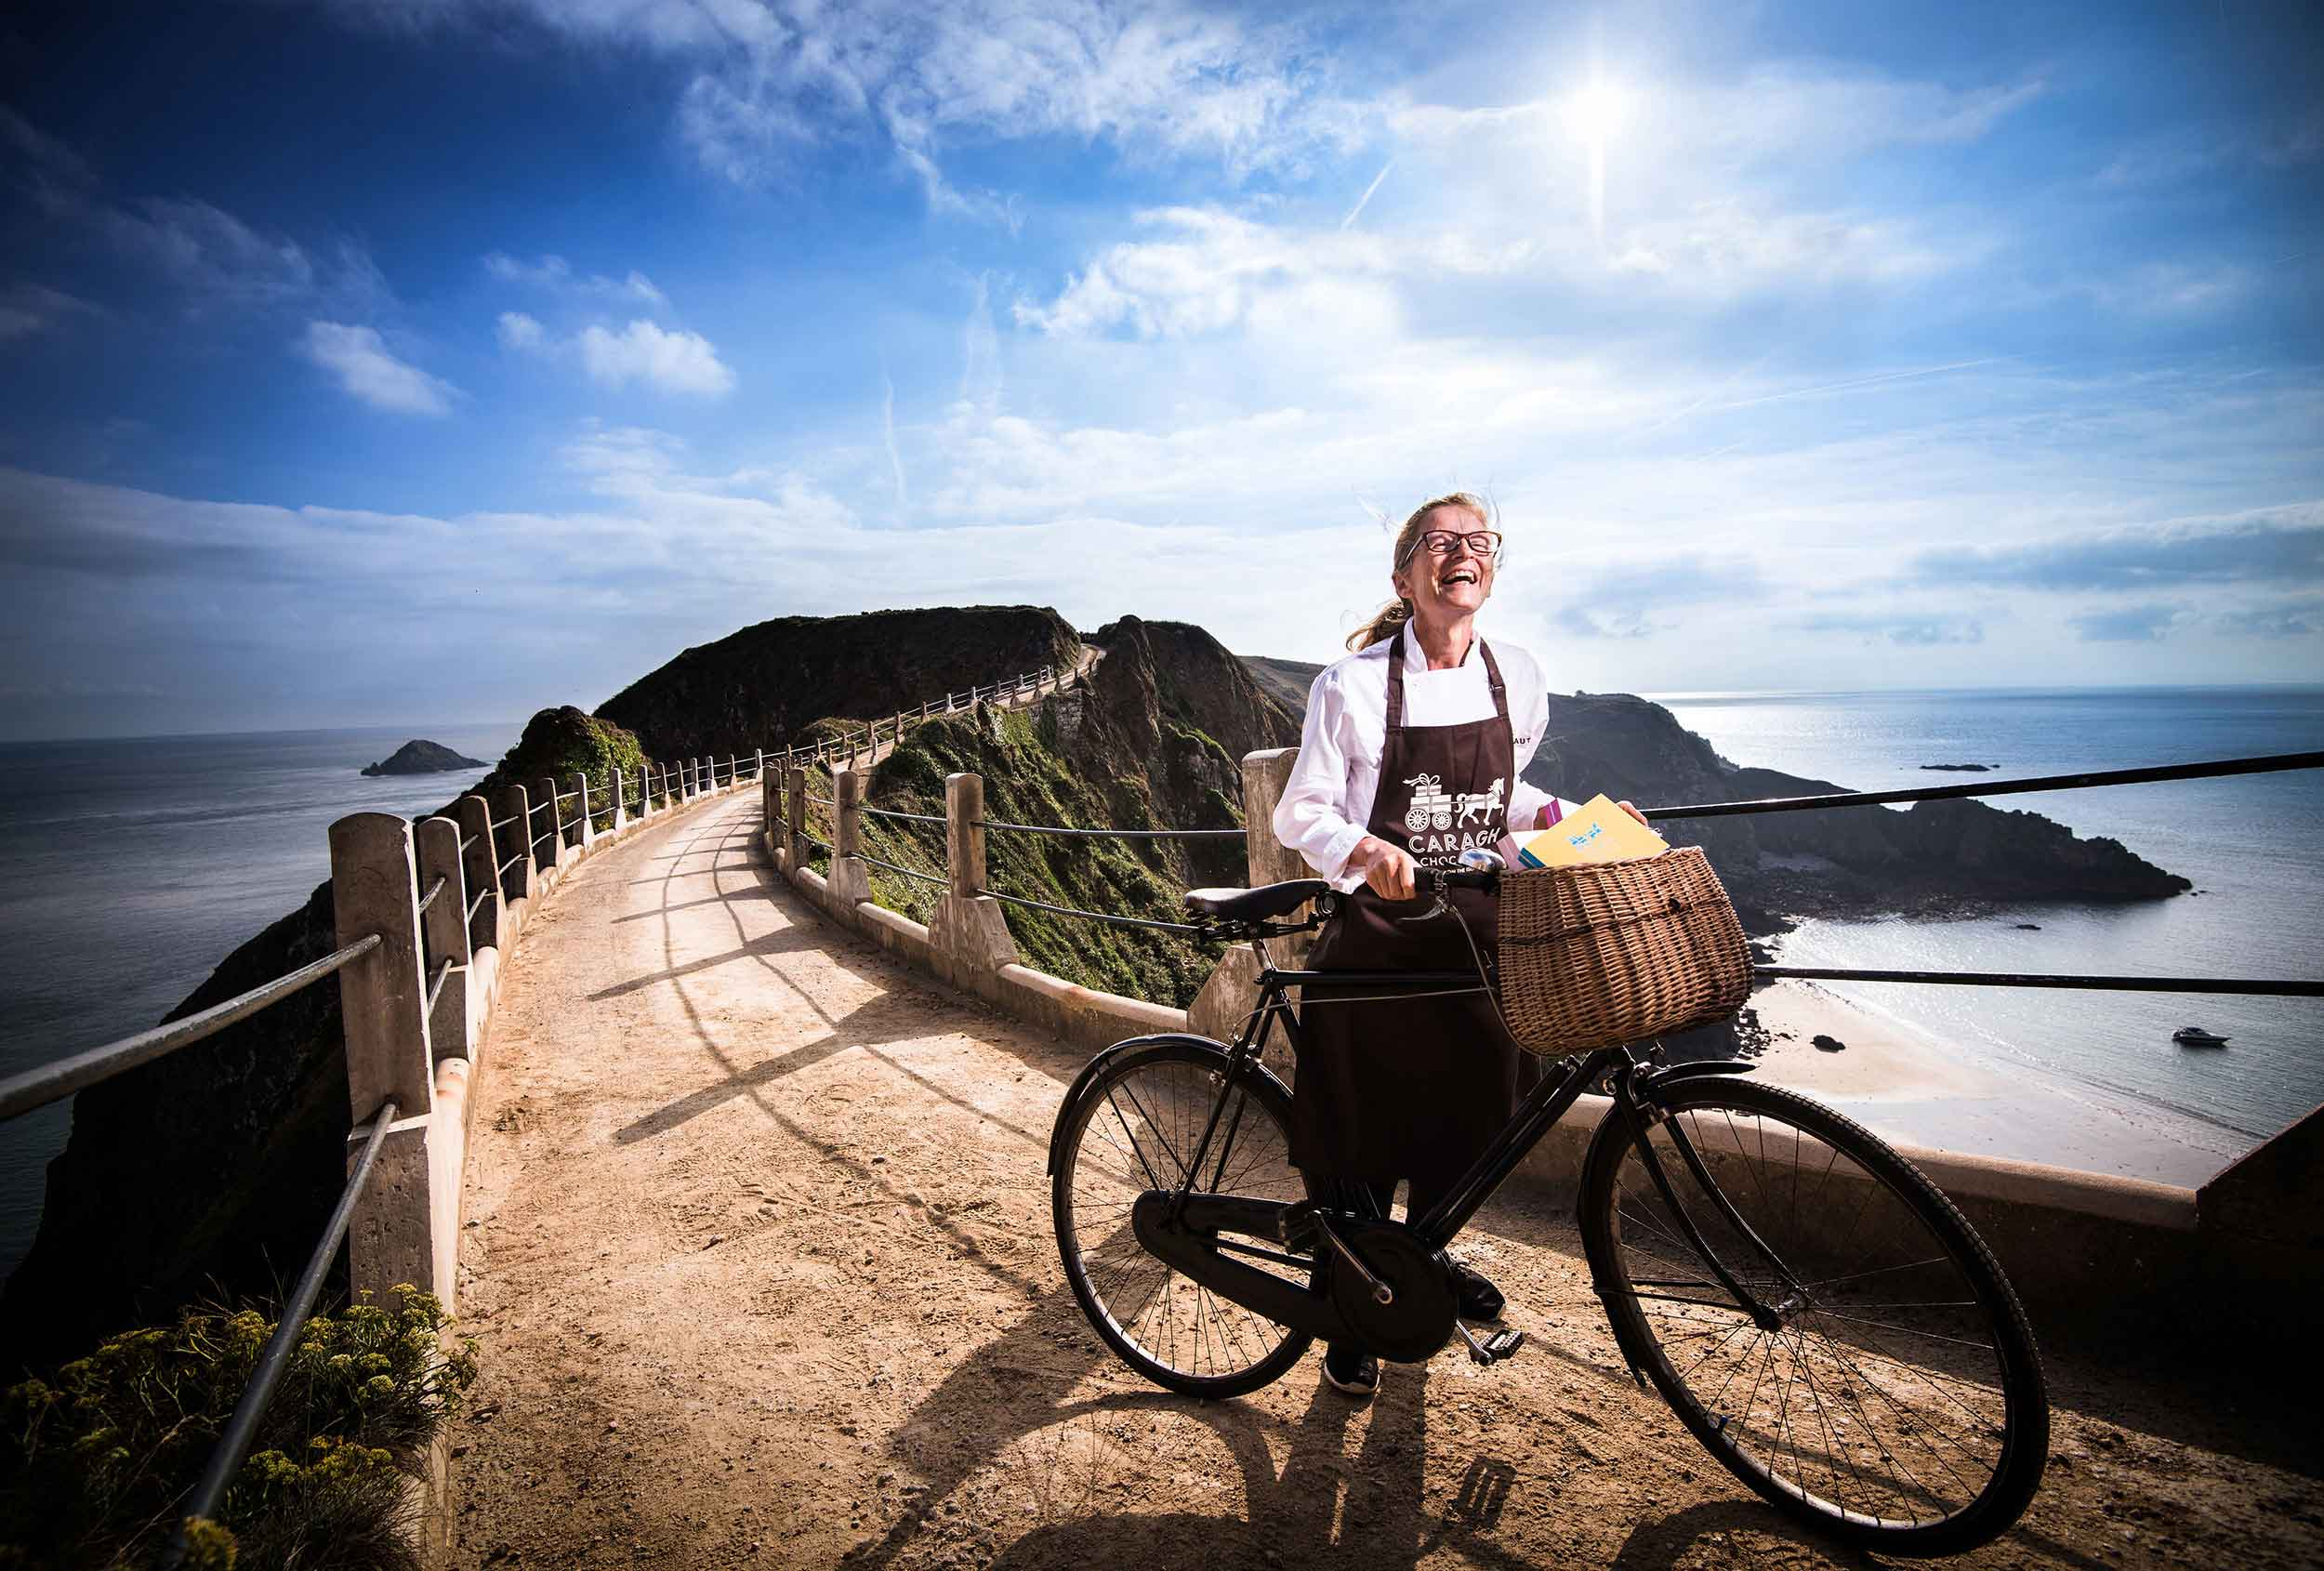 One of a series of images art directed by Distil Studio for Caragh Chocolates. Photography by Michael Feather.